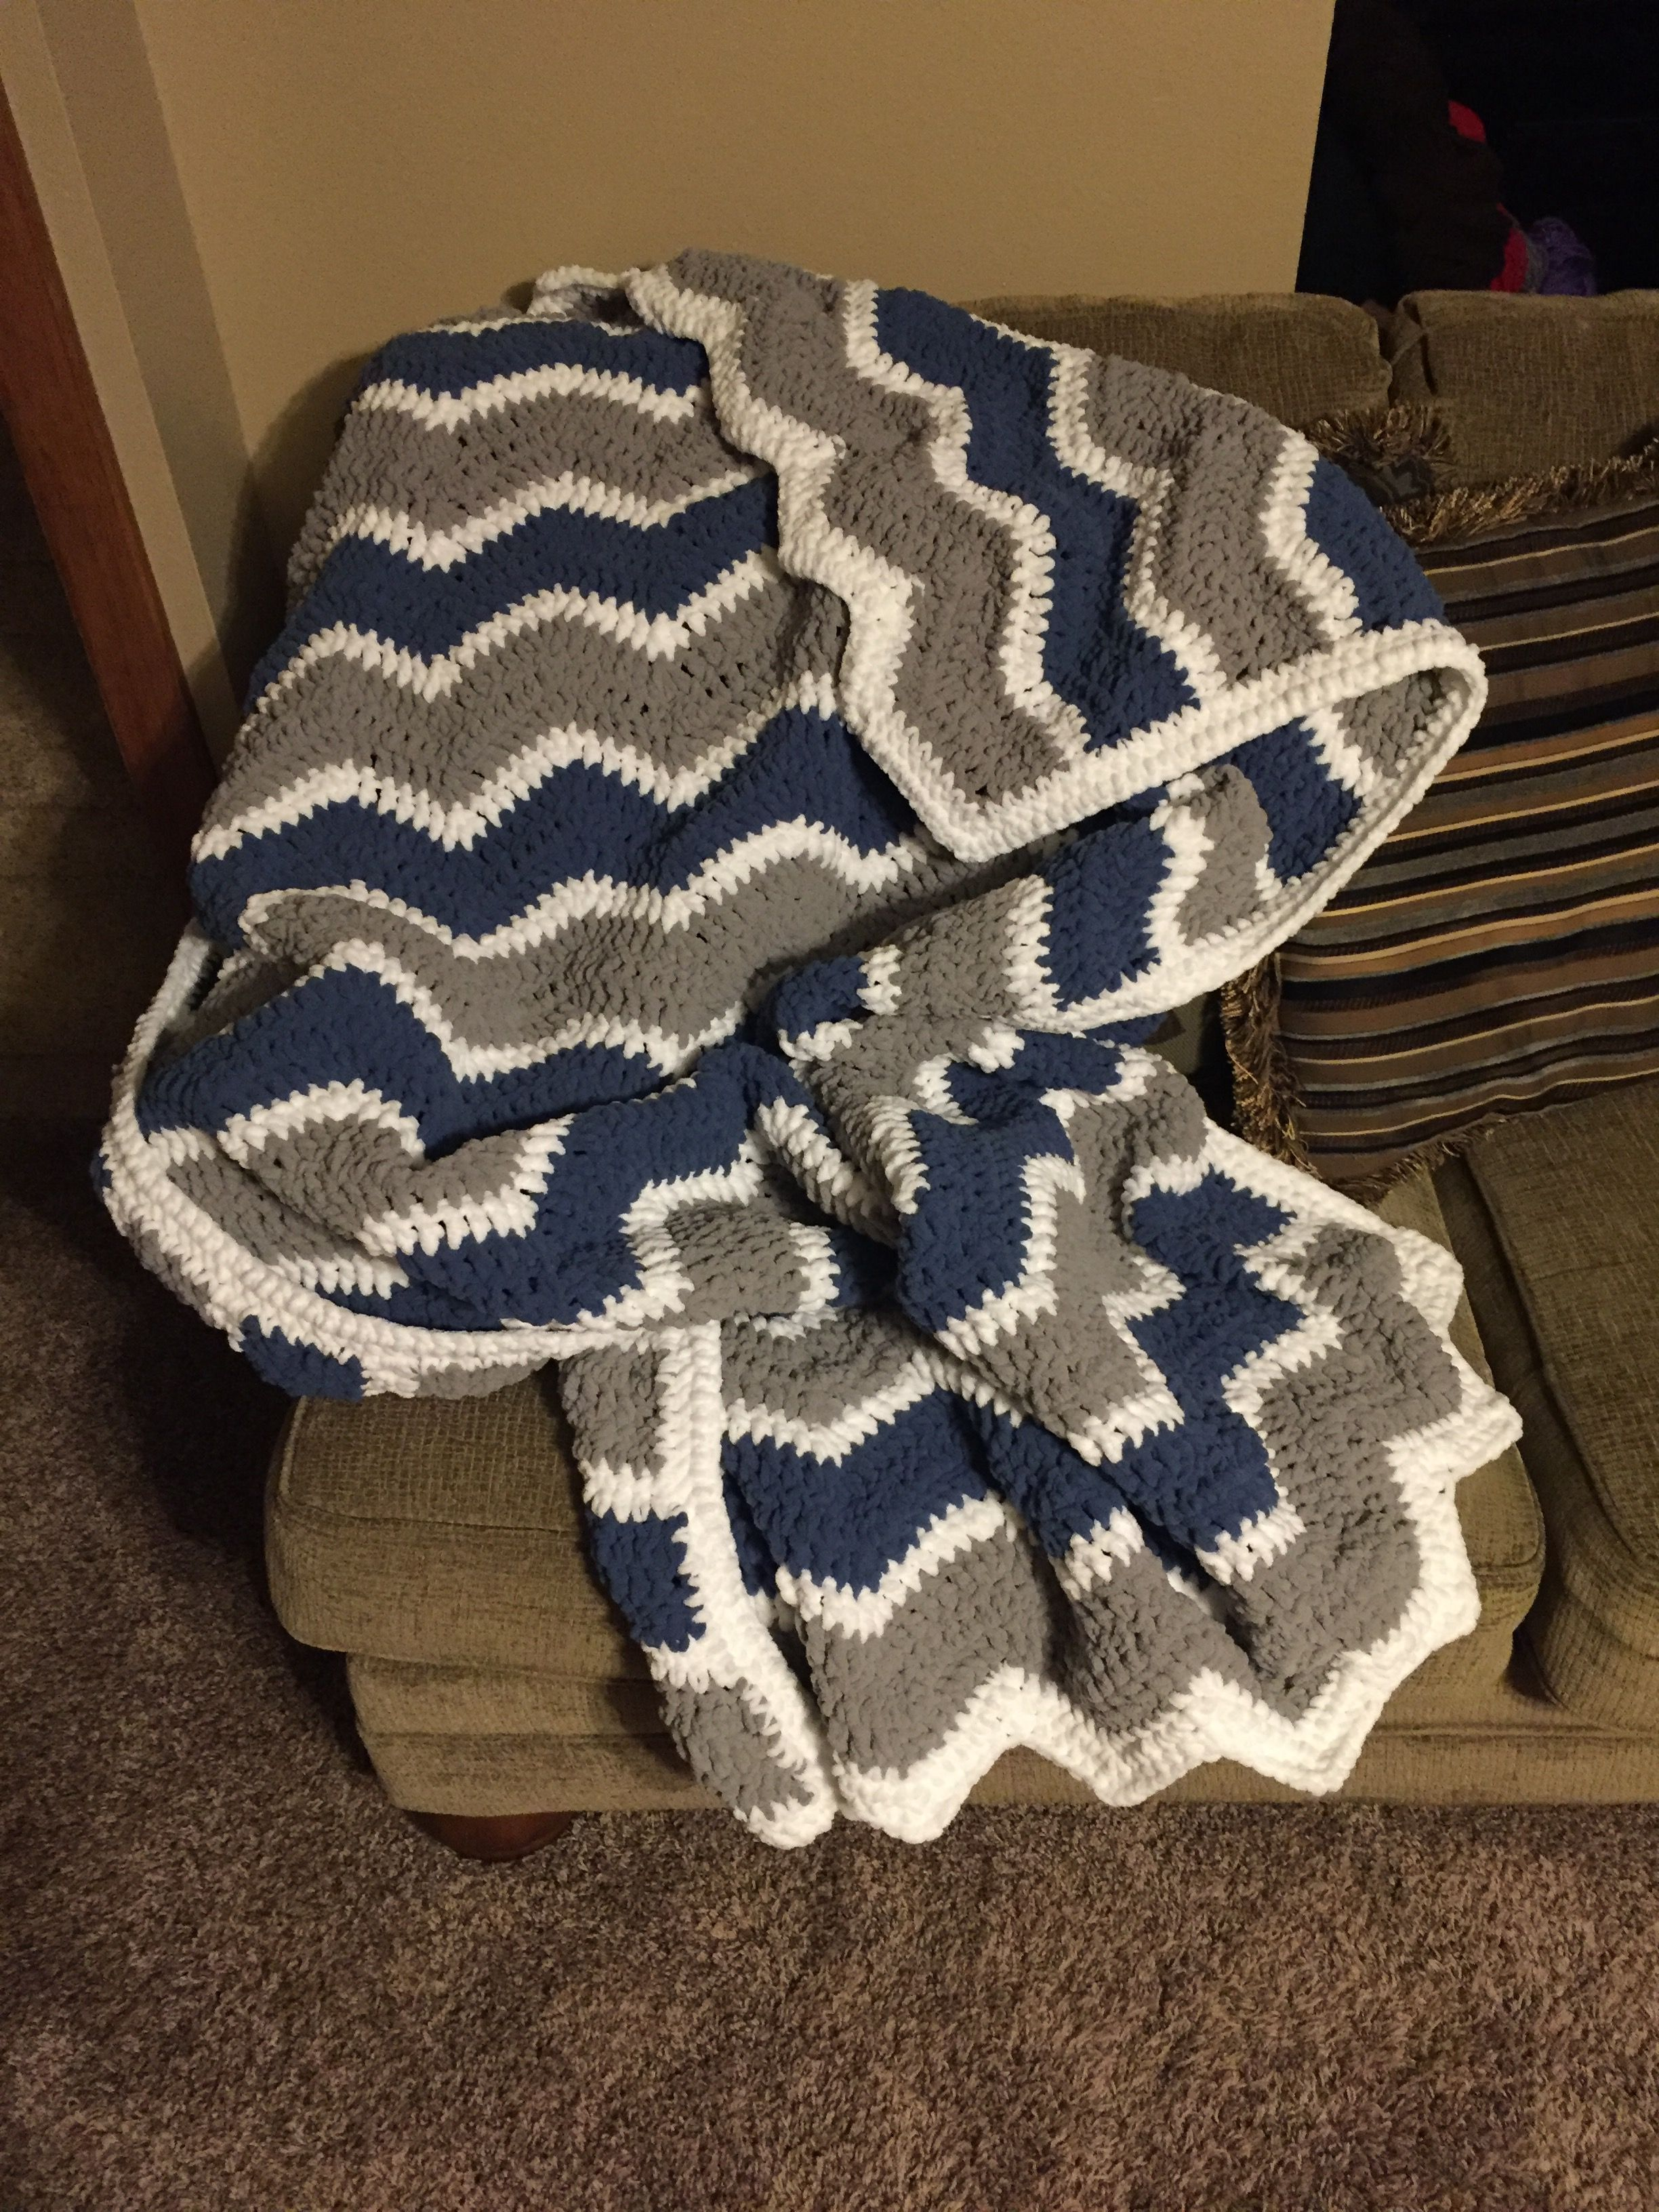 Chevron Crochet Blanket - Bernat Blanket Yarn | Ganchillo y media ...